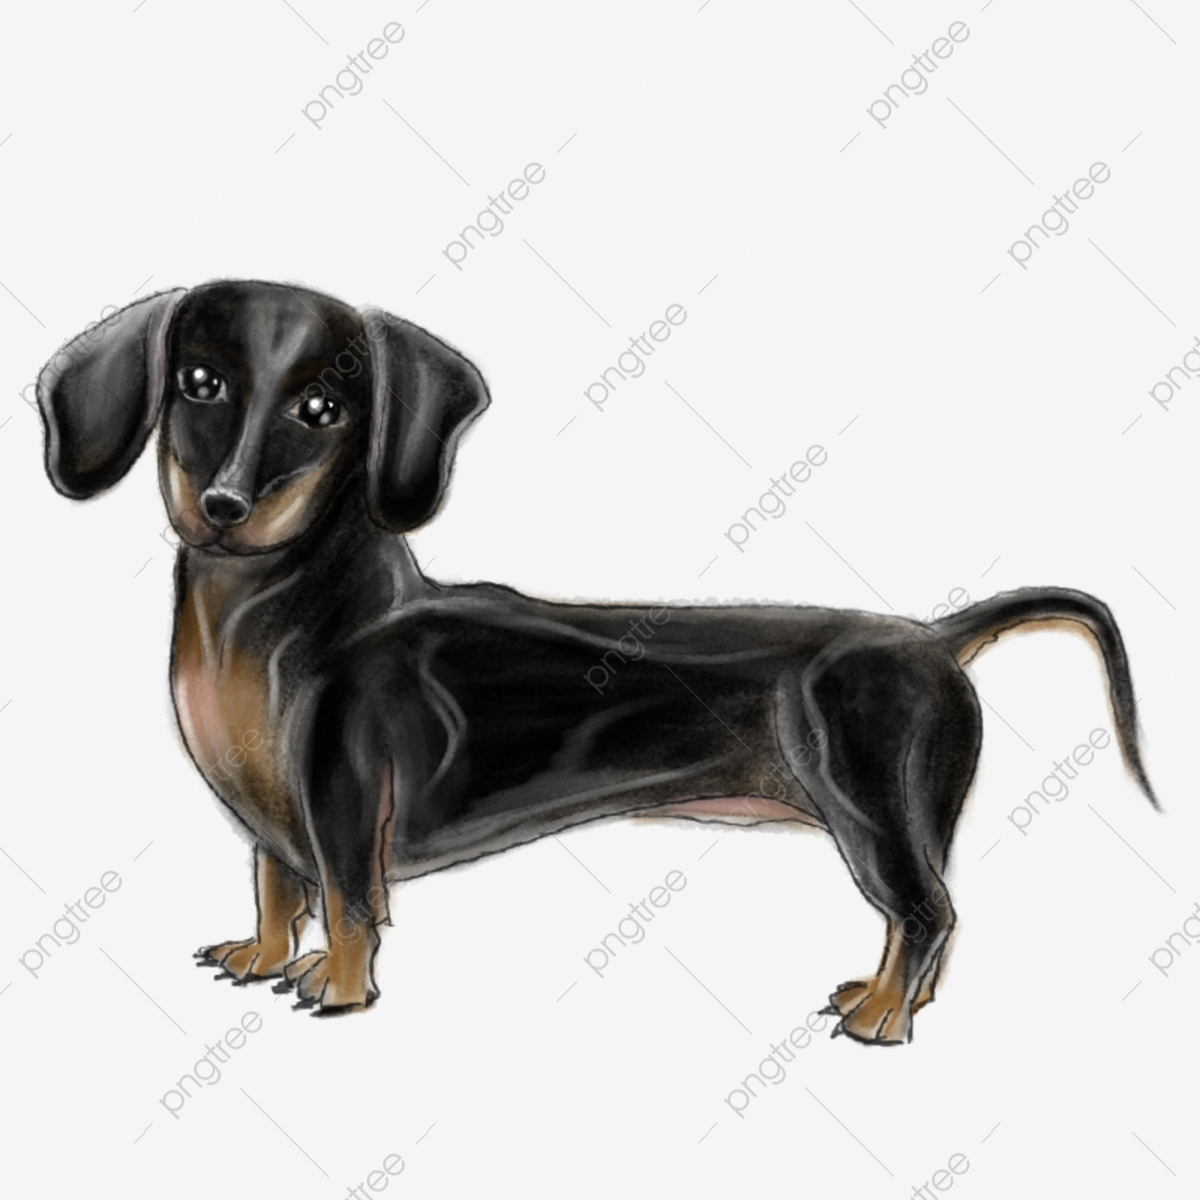 Cartoon Dachshund Puppy Illustration Dachshund Clipart Black Dog Dachshund Png Transparent Clipart Image And Psd File For Free Download